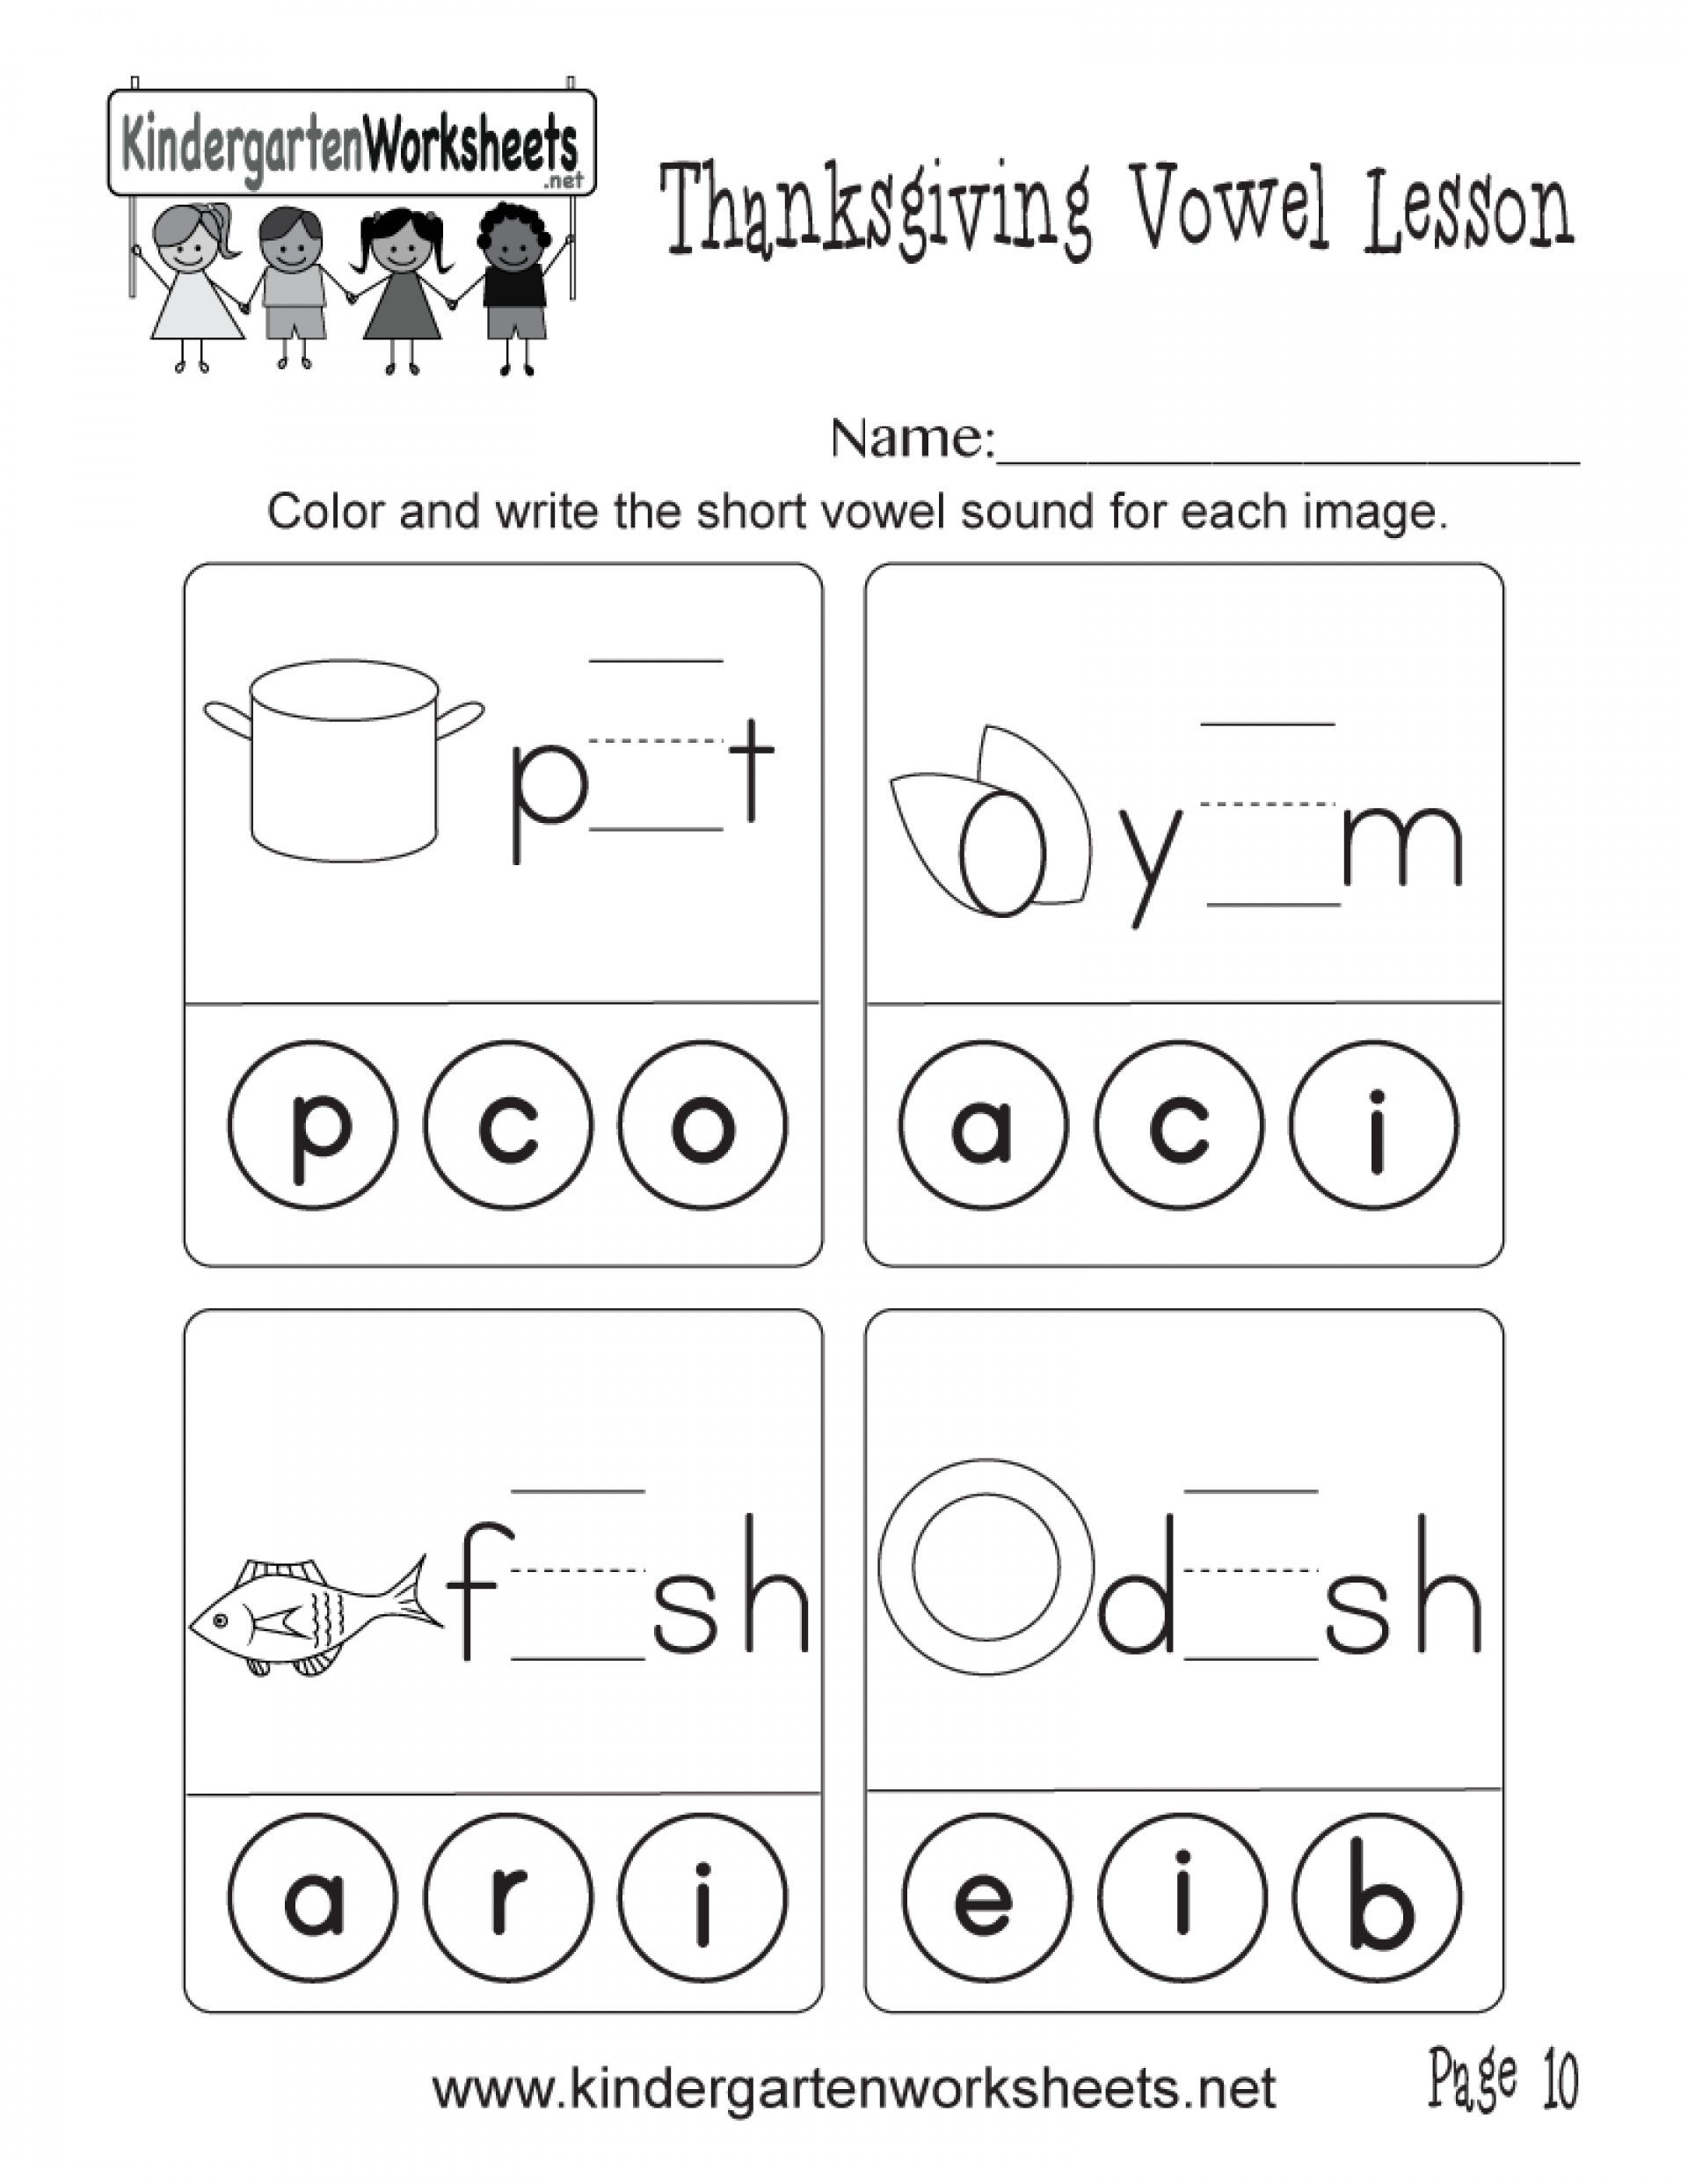 Short Vowel Worksheet Kindergarten Math Worksheet Printable Short Vowel Worksheets 1st Grade